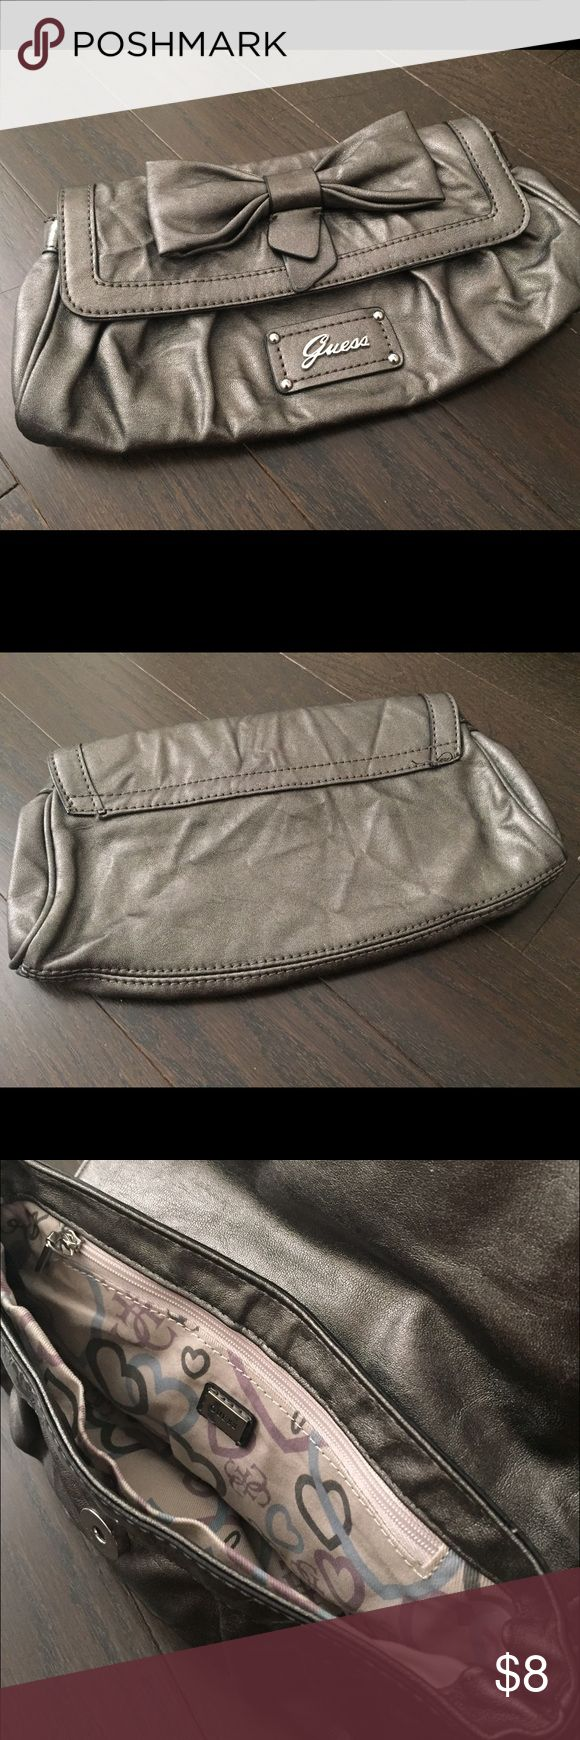 Cute silver grey clutch from GUESS Very cute grey GUESS clutch with bow tie.  Very good condition. No defects at all. Guess Bags Clutches & Wristlets